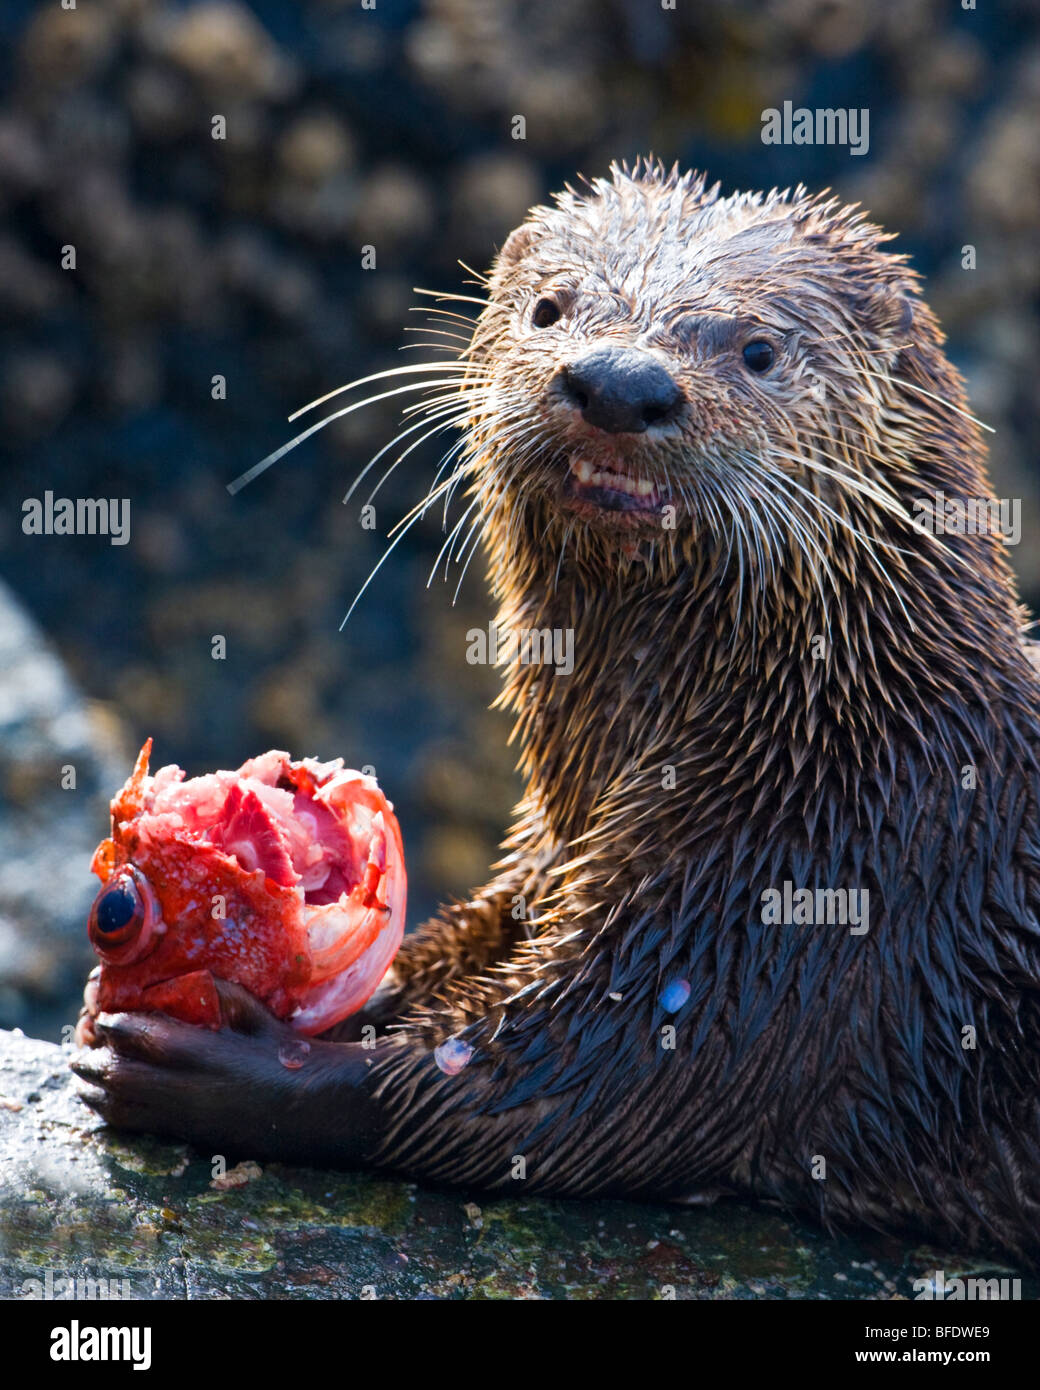 River otter (Lontra canadensis) eating a fish in Victoria, Vancouver Island, British Columbia, Canada Stock Photo